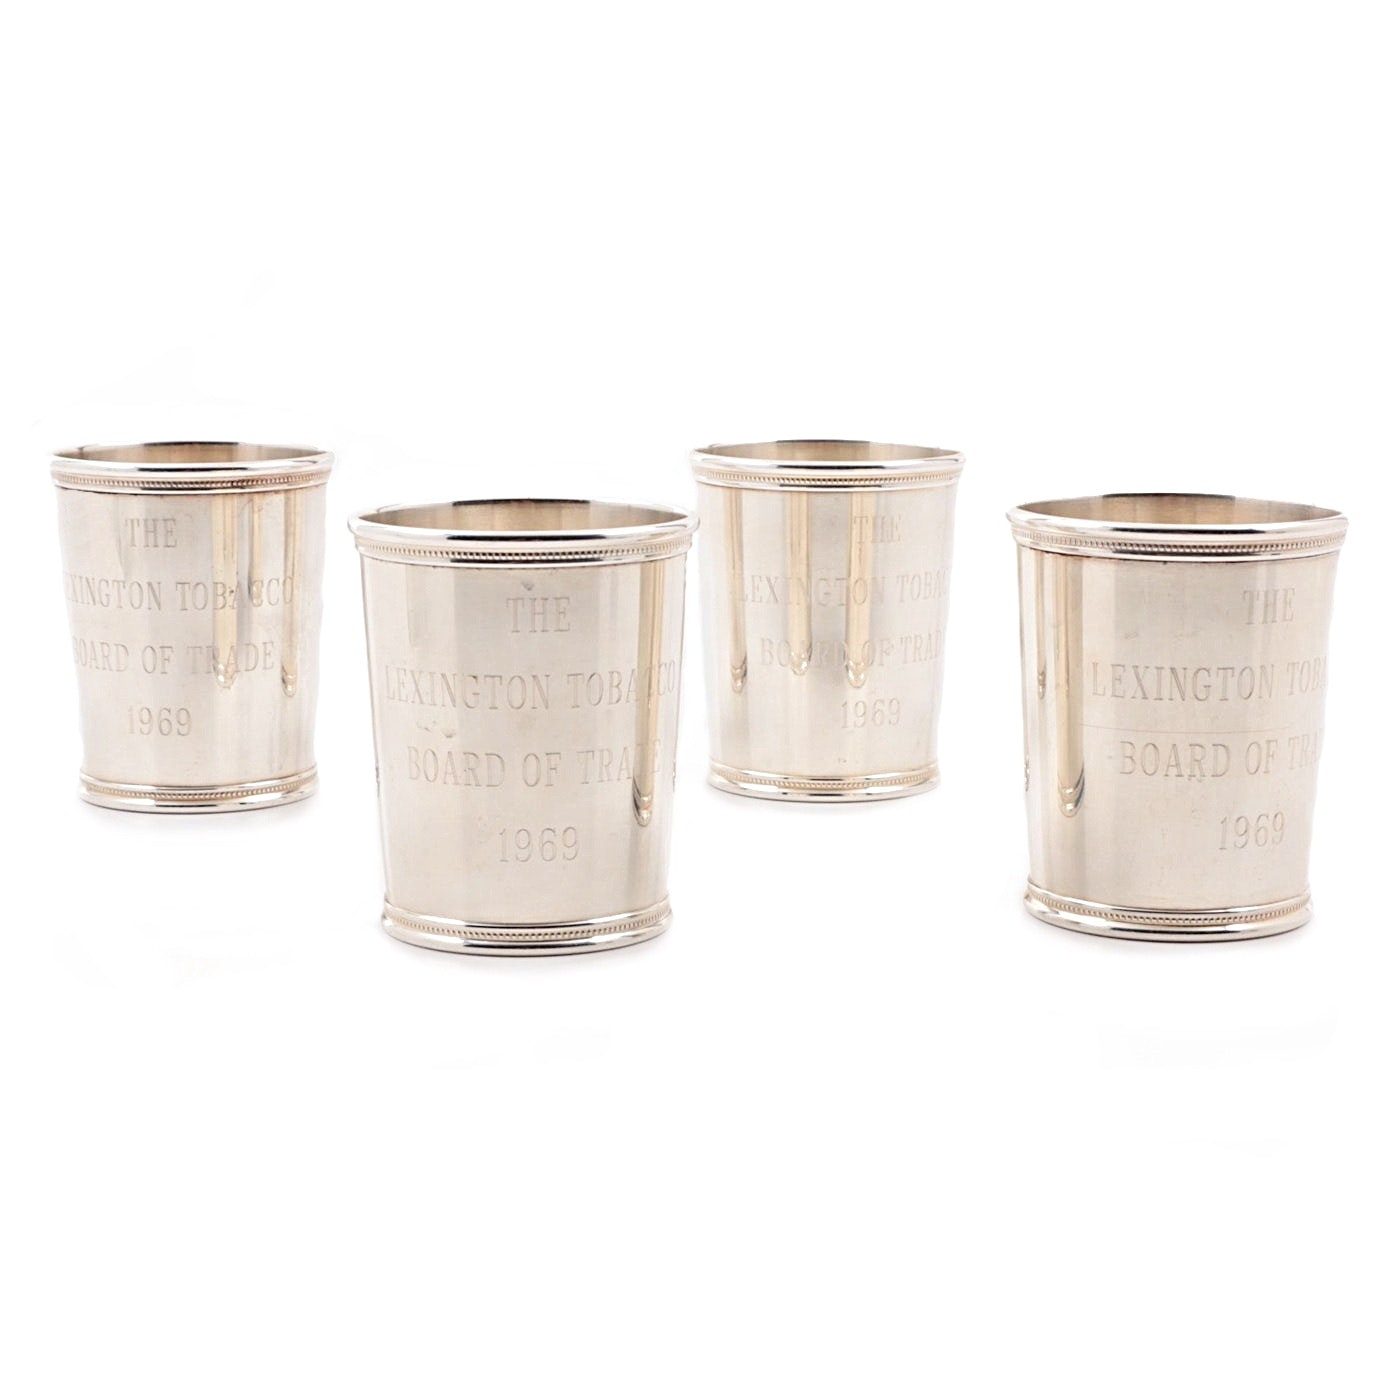 Four 1969 Sterling Silver Mint Julep Cups by Benjamin Trees, Lexington